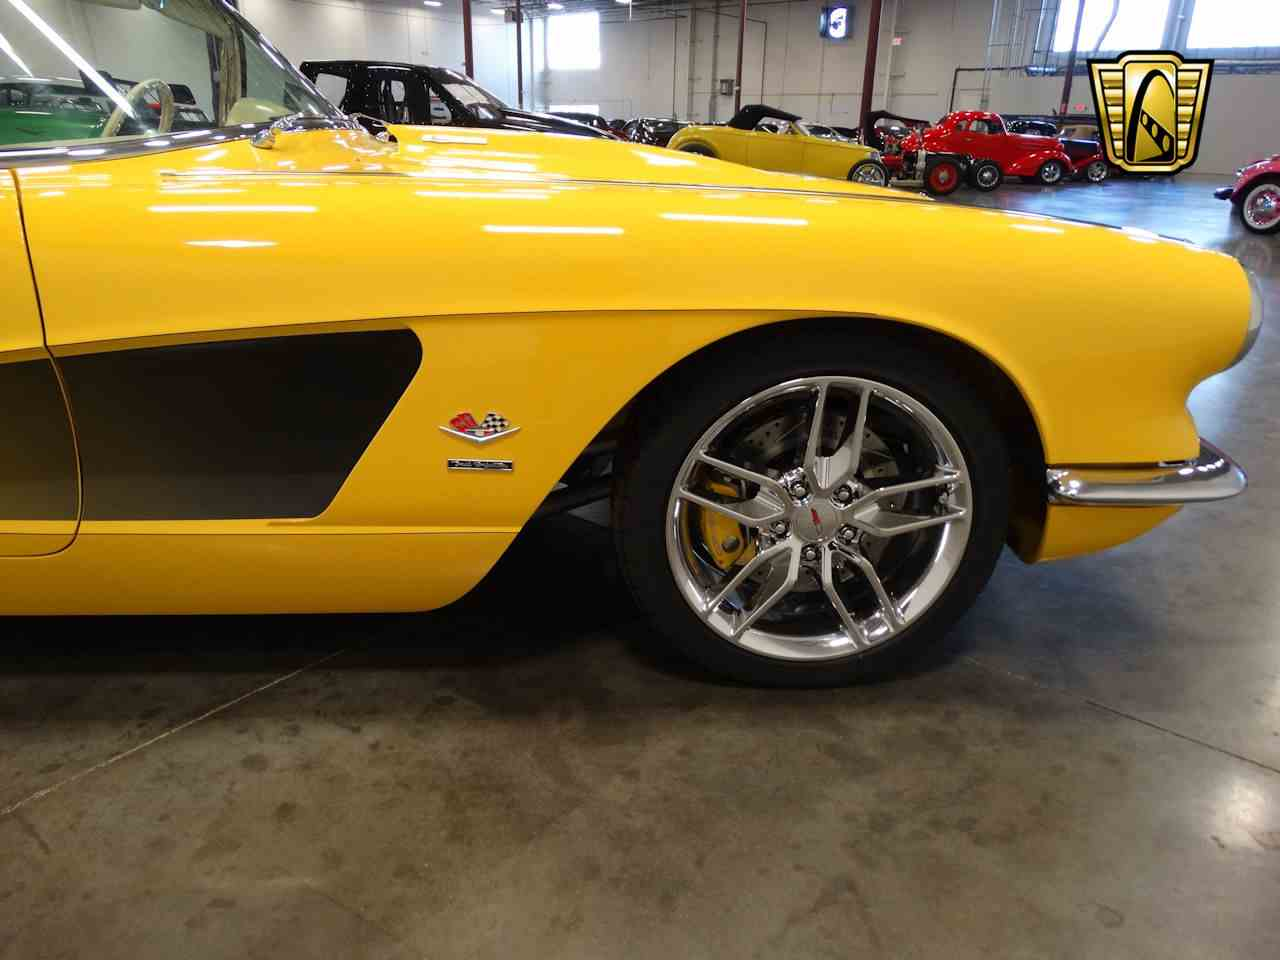 Large Picture of '62 Chevrolet Corvette located in Tennessee - $210,000.00 Offered by Gateway Classic Cars - Nashville - M2LR